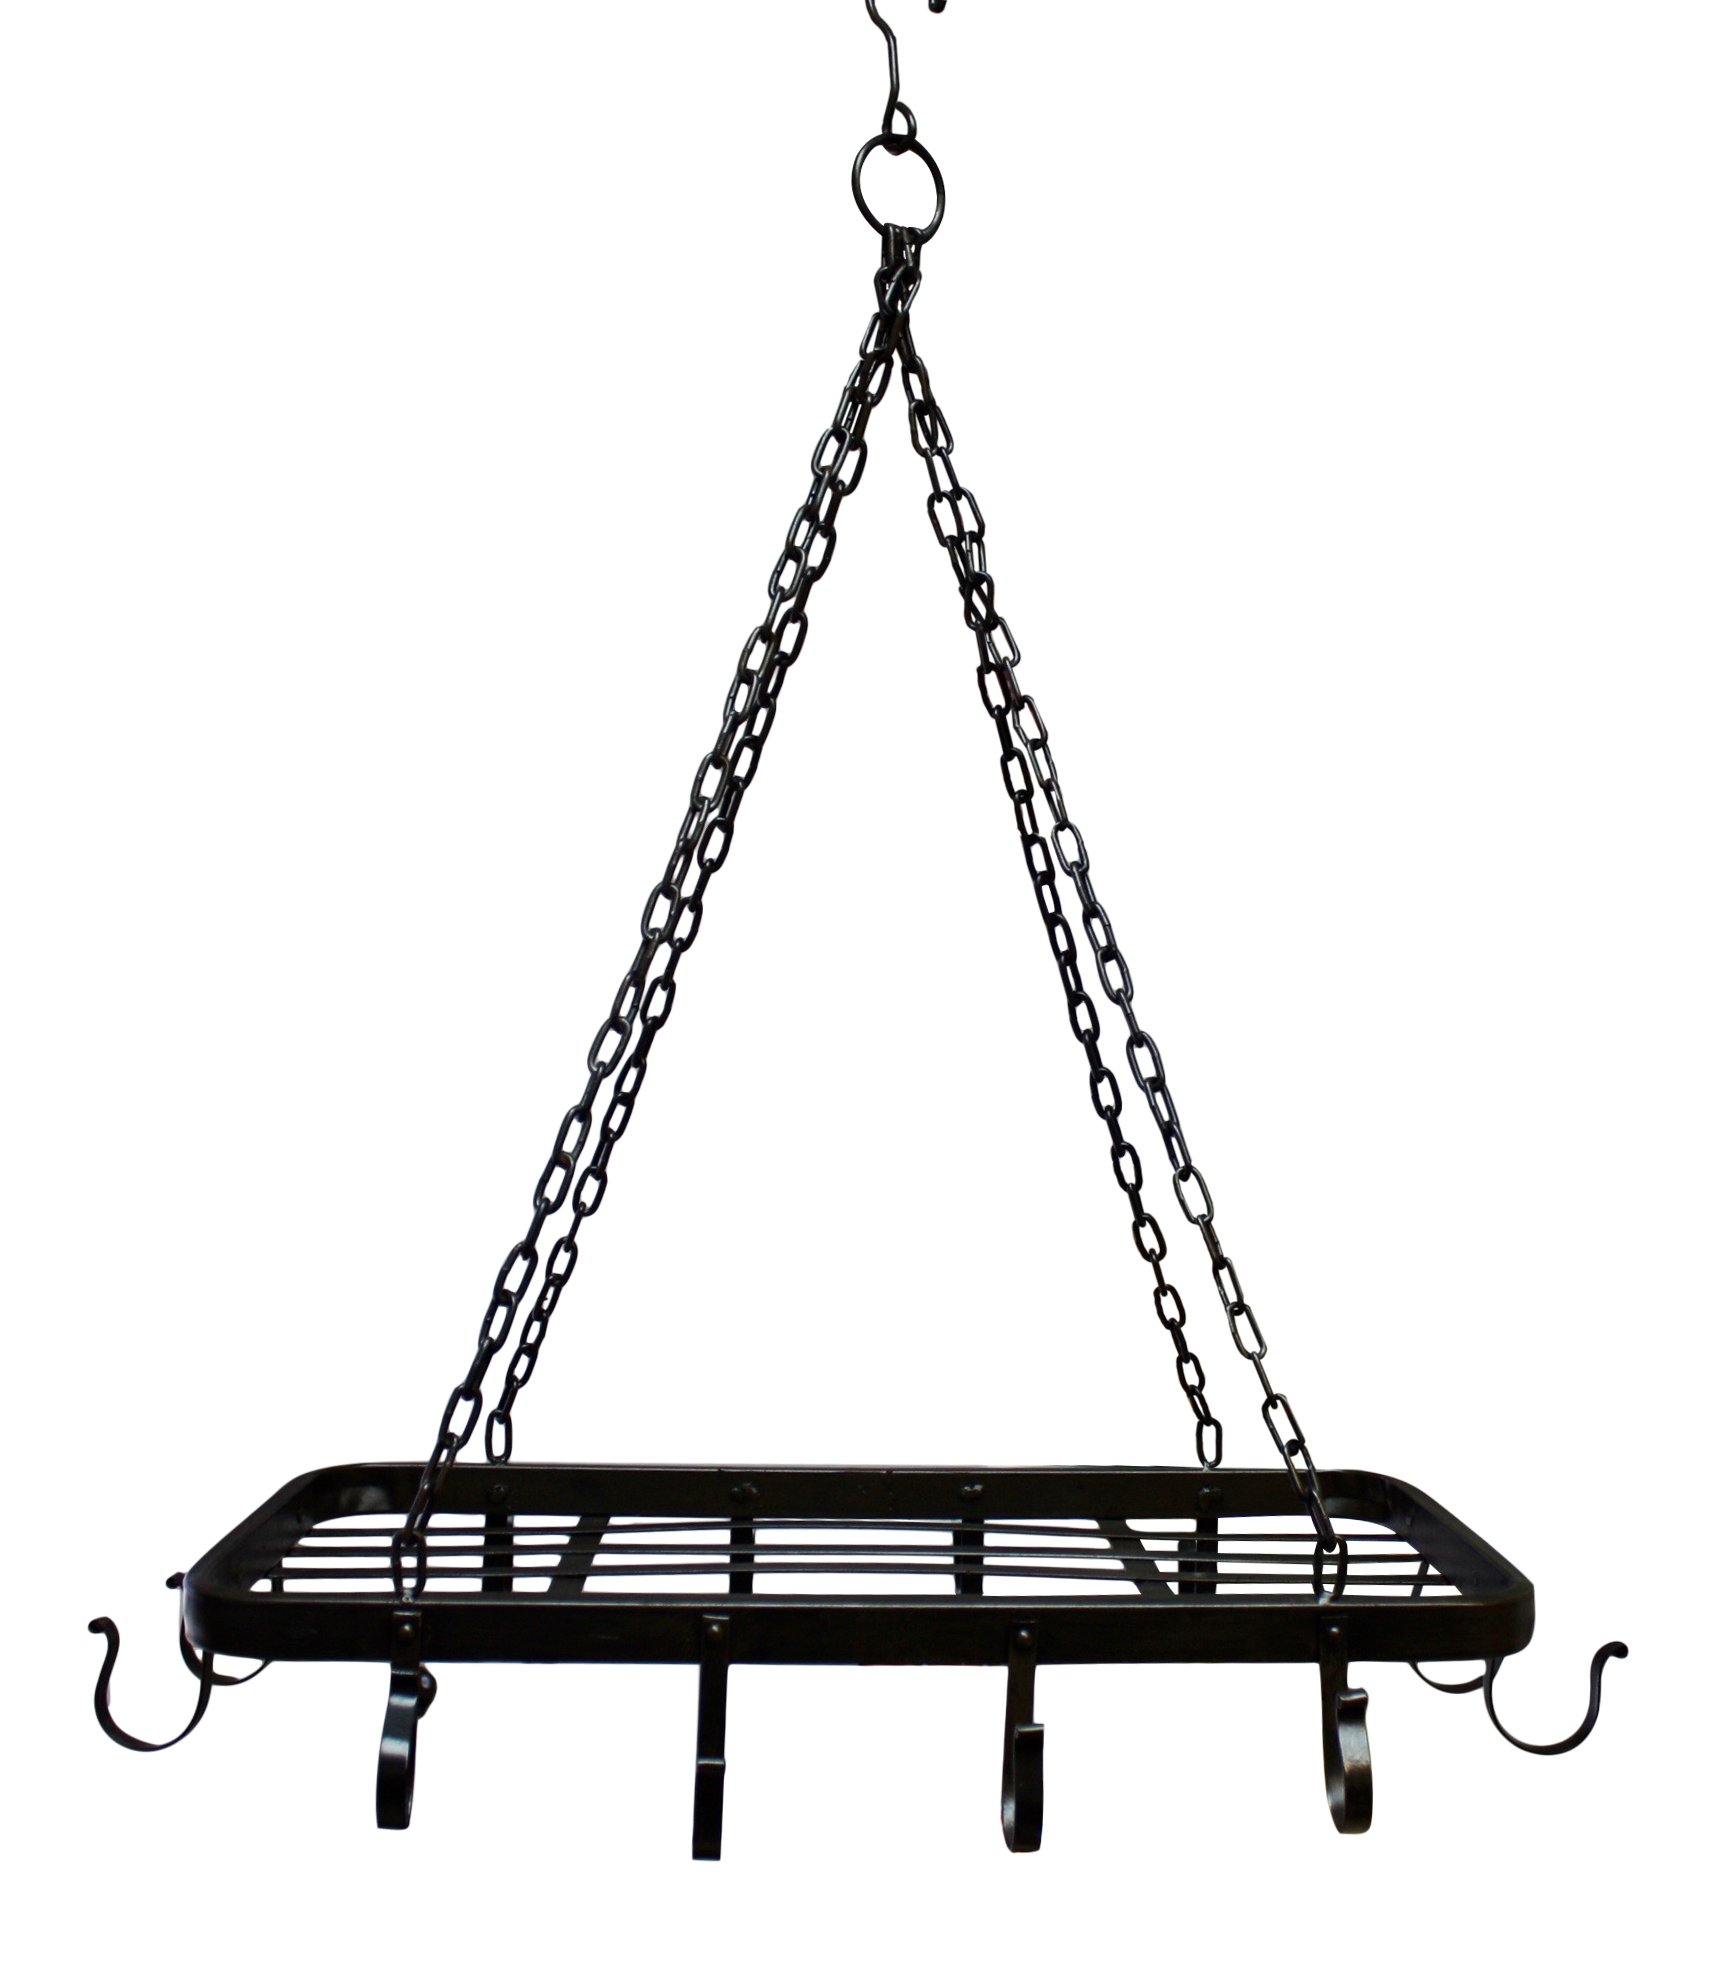 French Style Iron Hanging Ceiling Rack Suspension for Pots and Pans